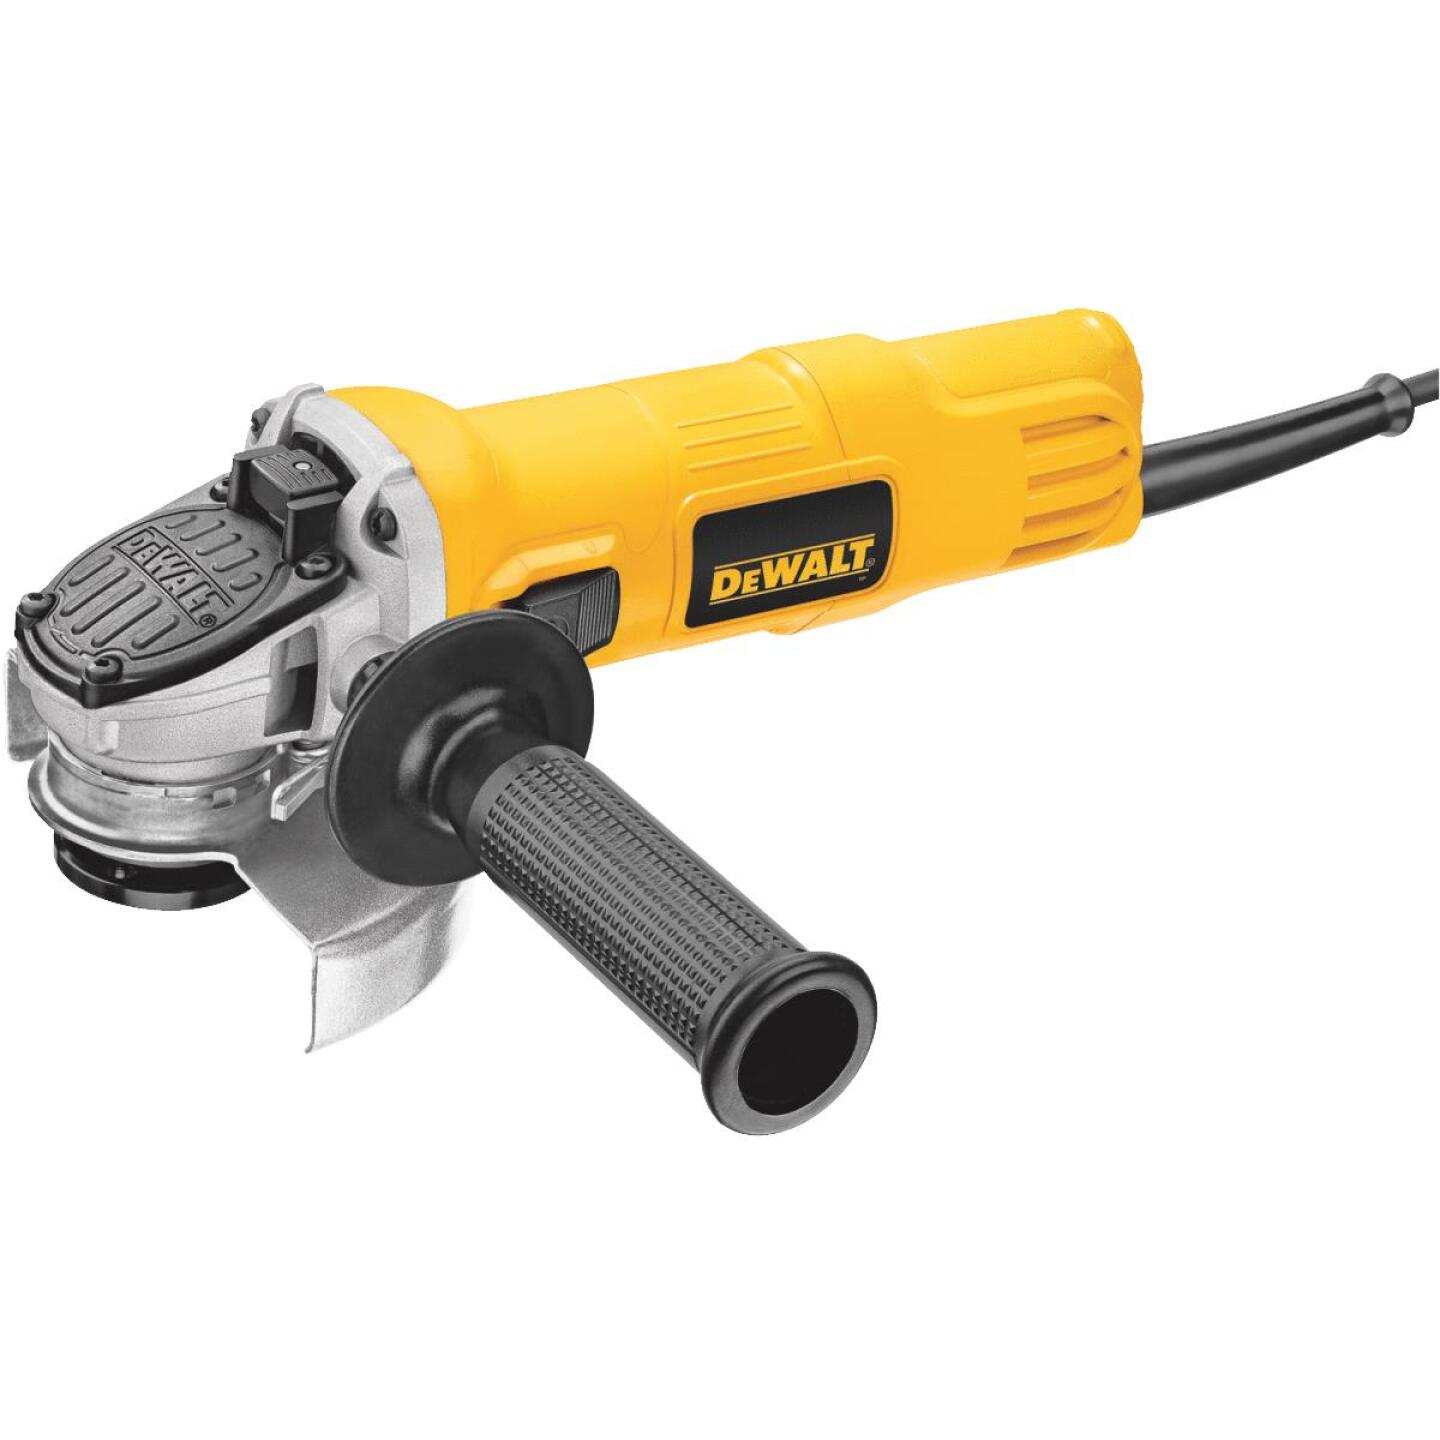 DeWalt 4-1/2 In. 7-Amp Angle Grinder with One-Touch Guard Image 1